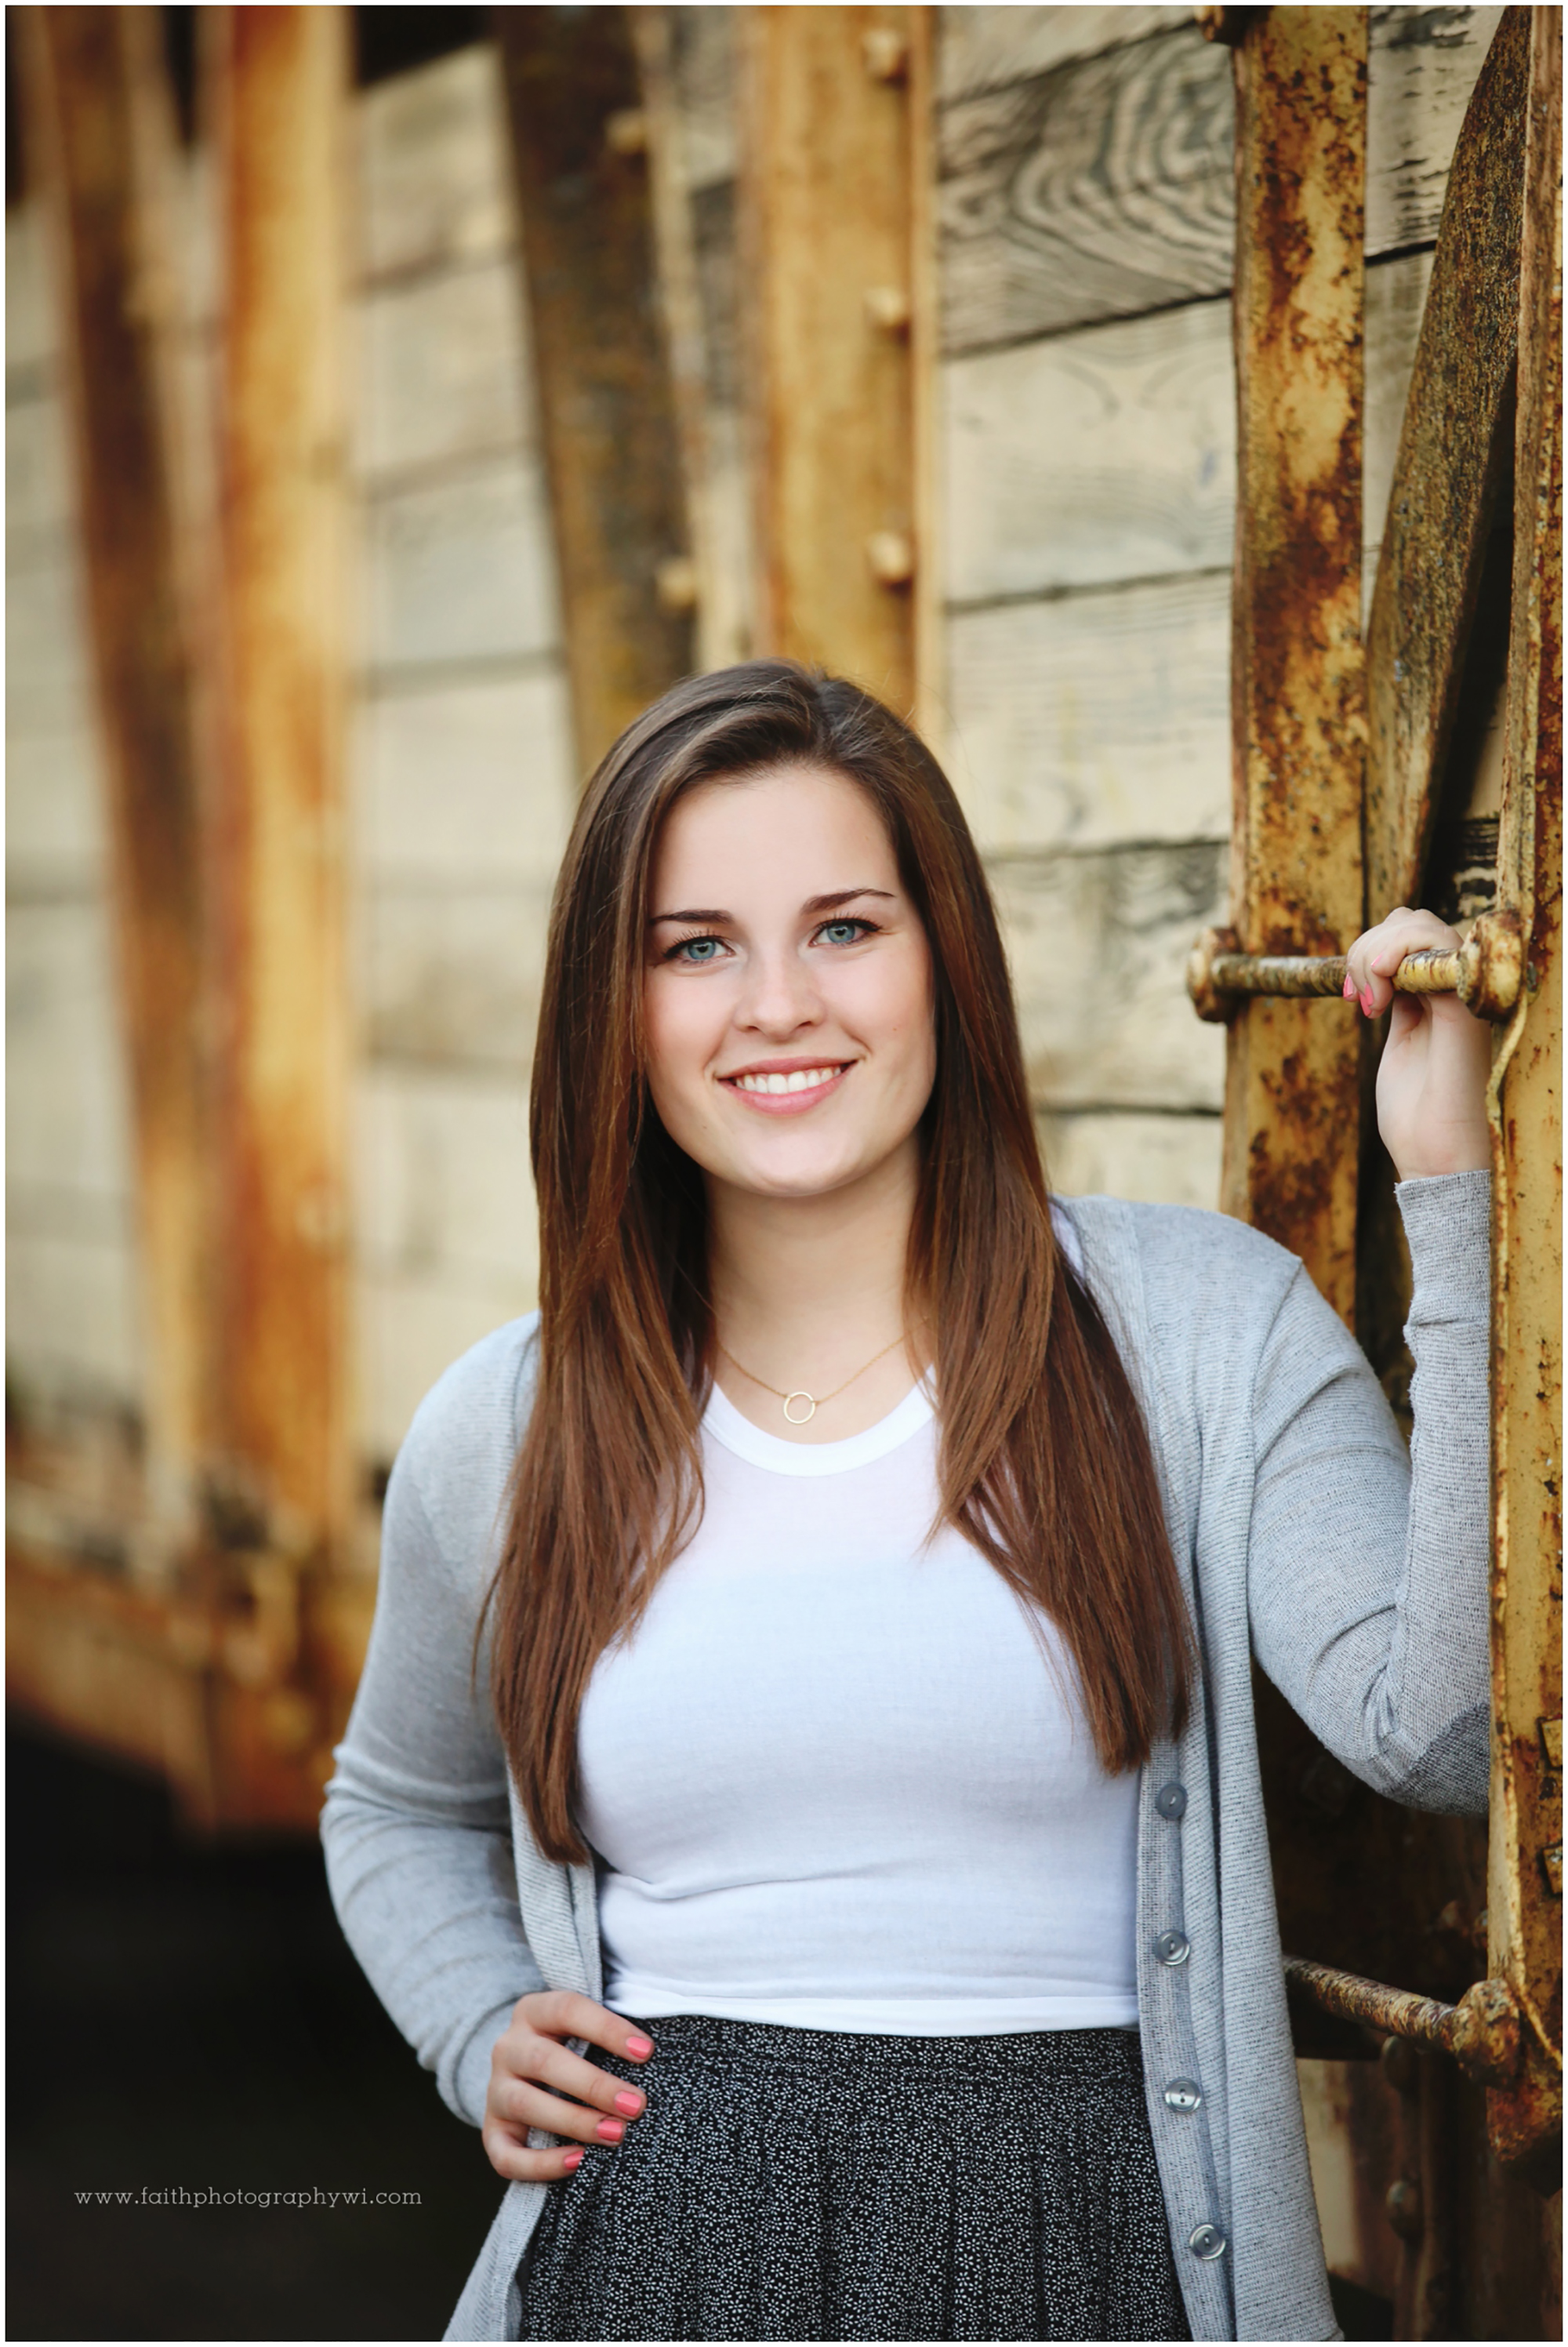 oconomowoc senior personals Meet senior singles in delafield, wisconsin online & connect in the chat rooms dhu is a 100% free dating site for senior dating in delafield.